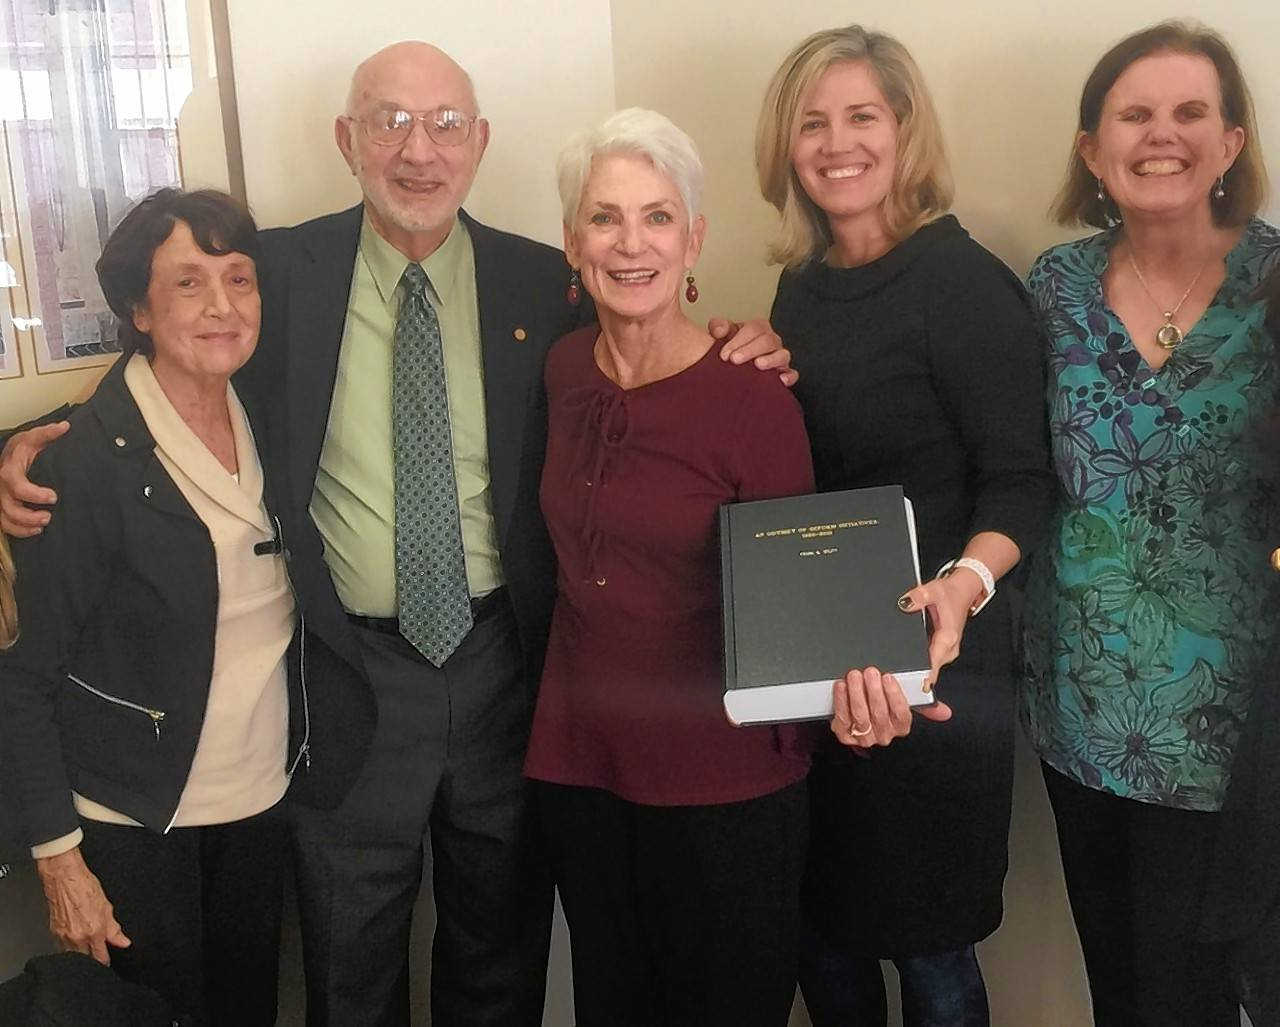 Pictured during a recent Loyola University-Chicago campus luncheon are: Judith Splitt; Frank Splitt; Patricia Shevlin, executive director of the Arthur J. Schmitt Foundation; Michelle Nickerson, professor of history, Loyola University; and Patricia Mooney-Melvin, dean of Loyola University's Graduate School.